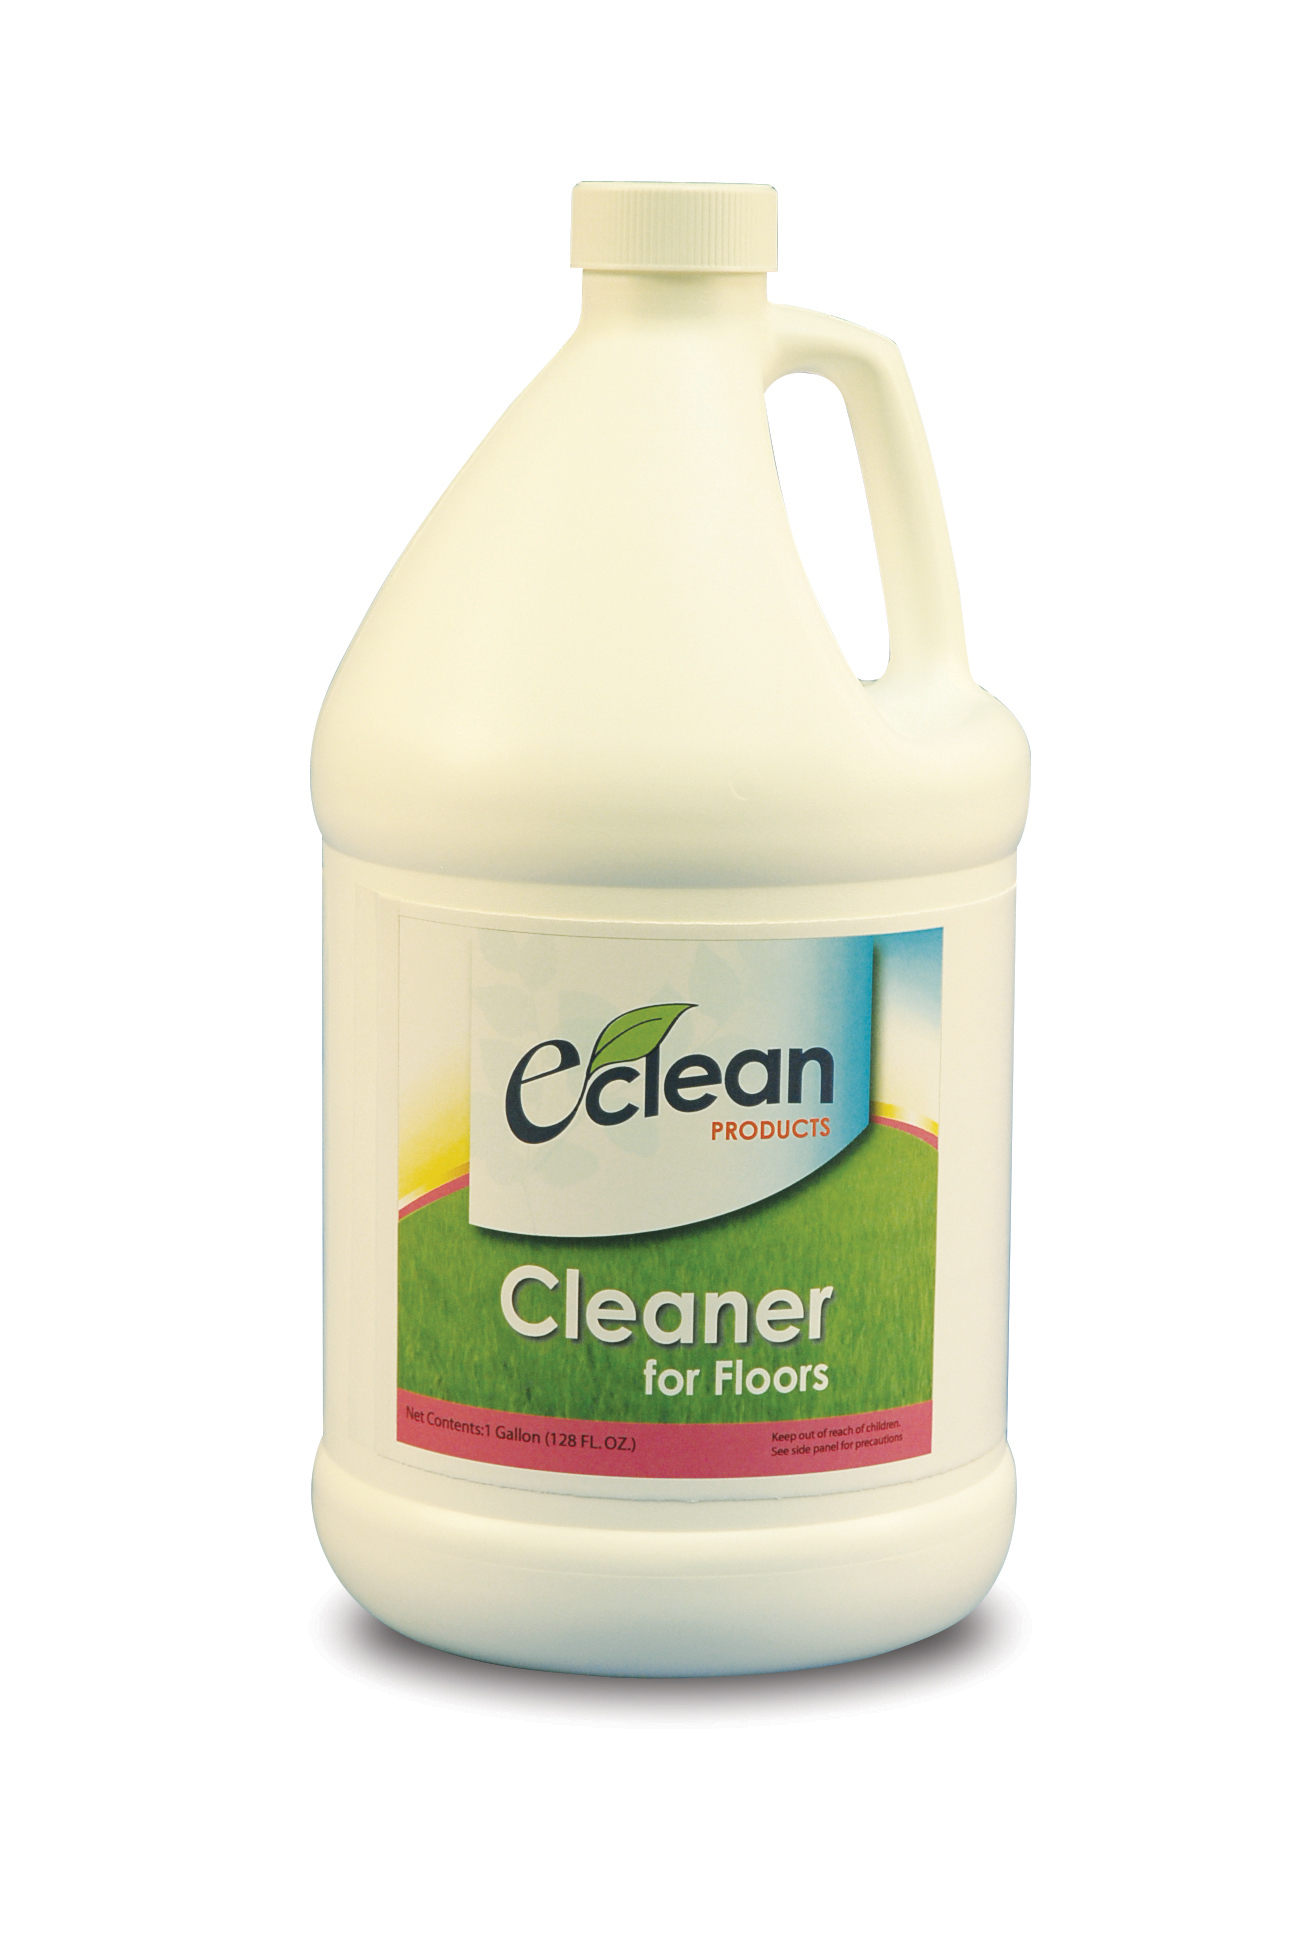 eclean cleaner for floors